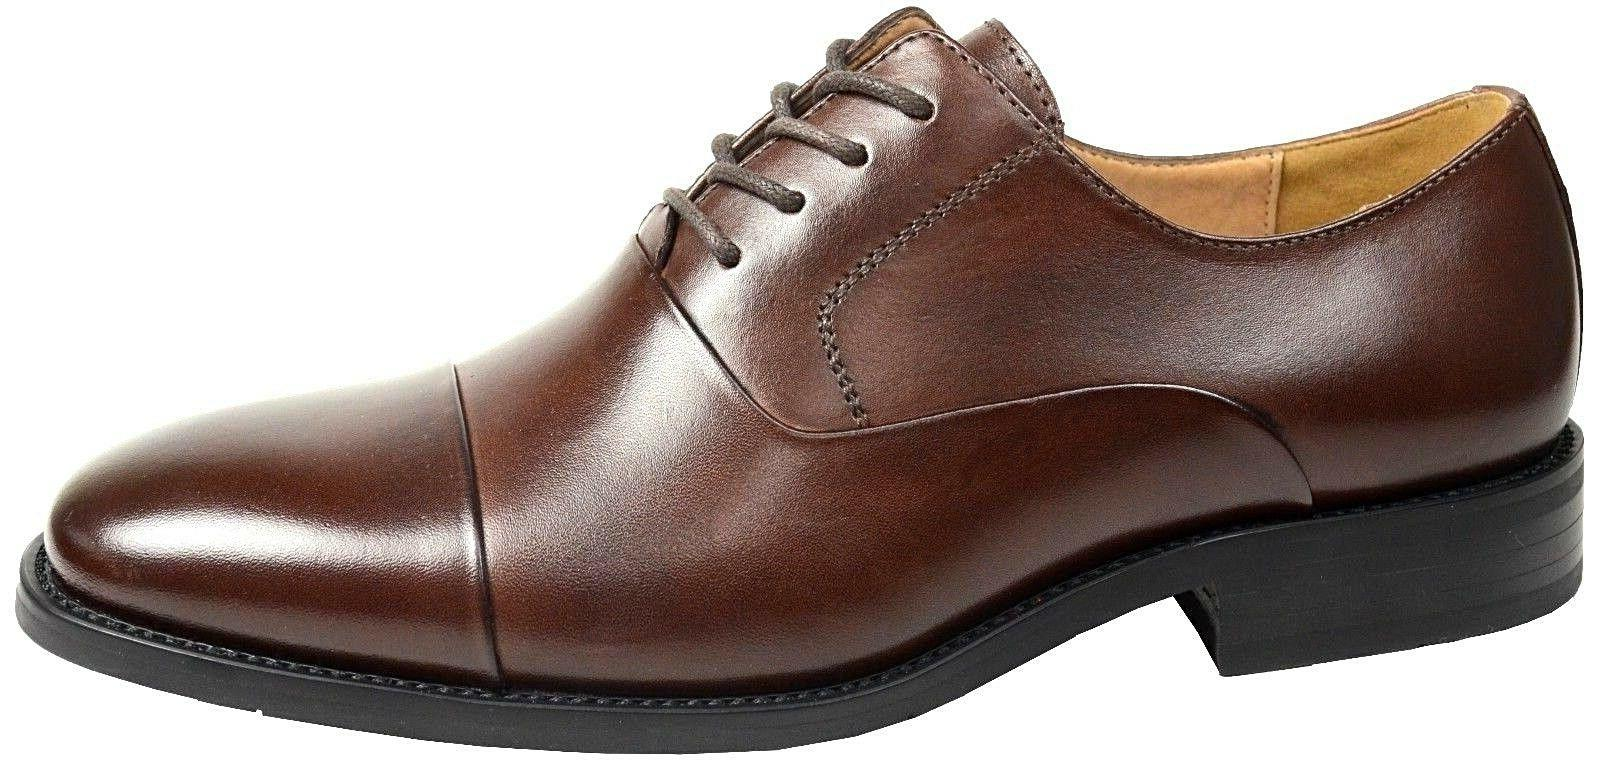 LA MILANO Mens Dress Shoes Cow Leather Oxfords Classic Round